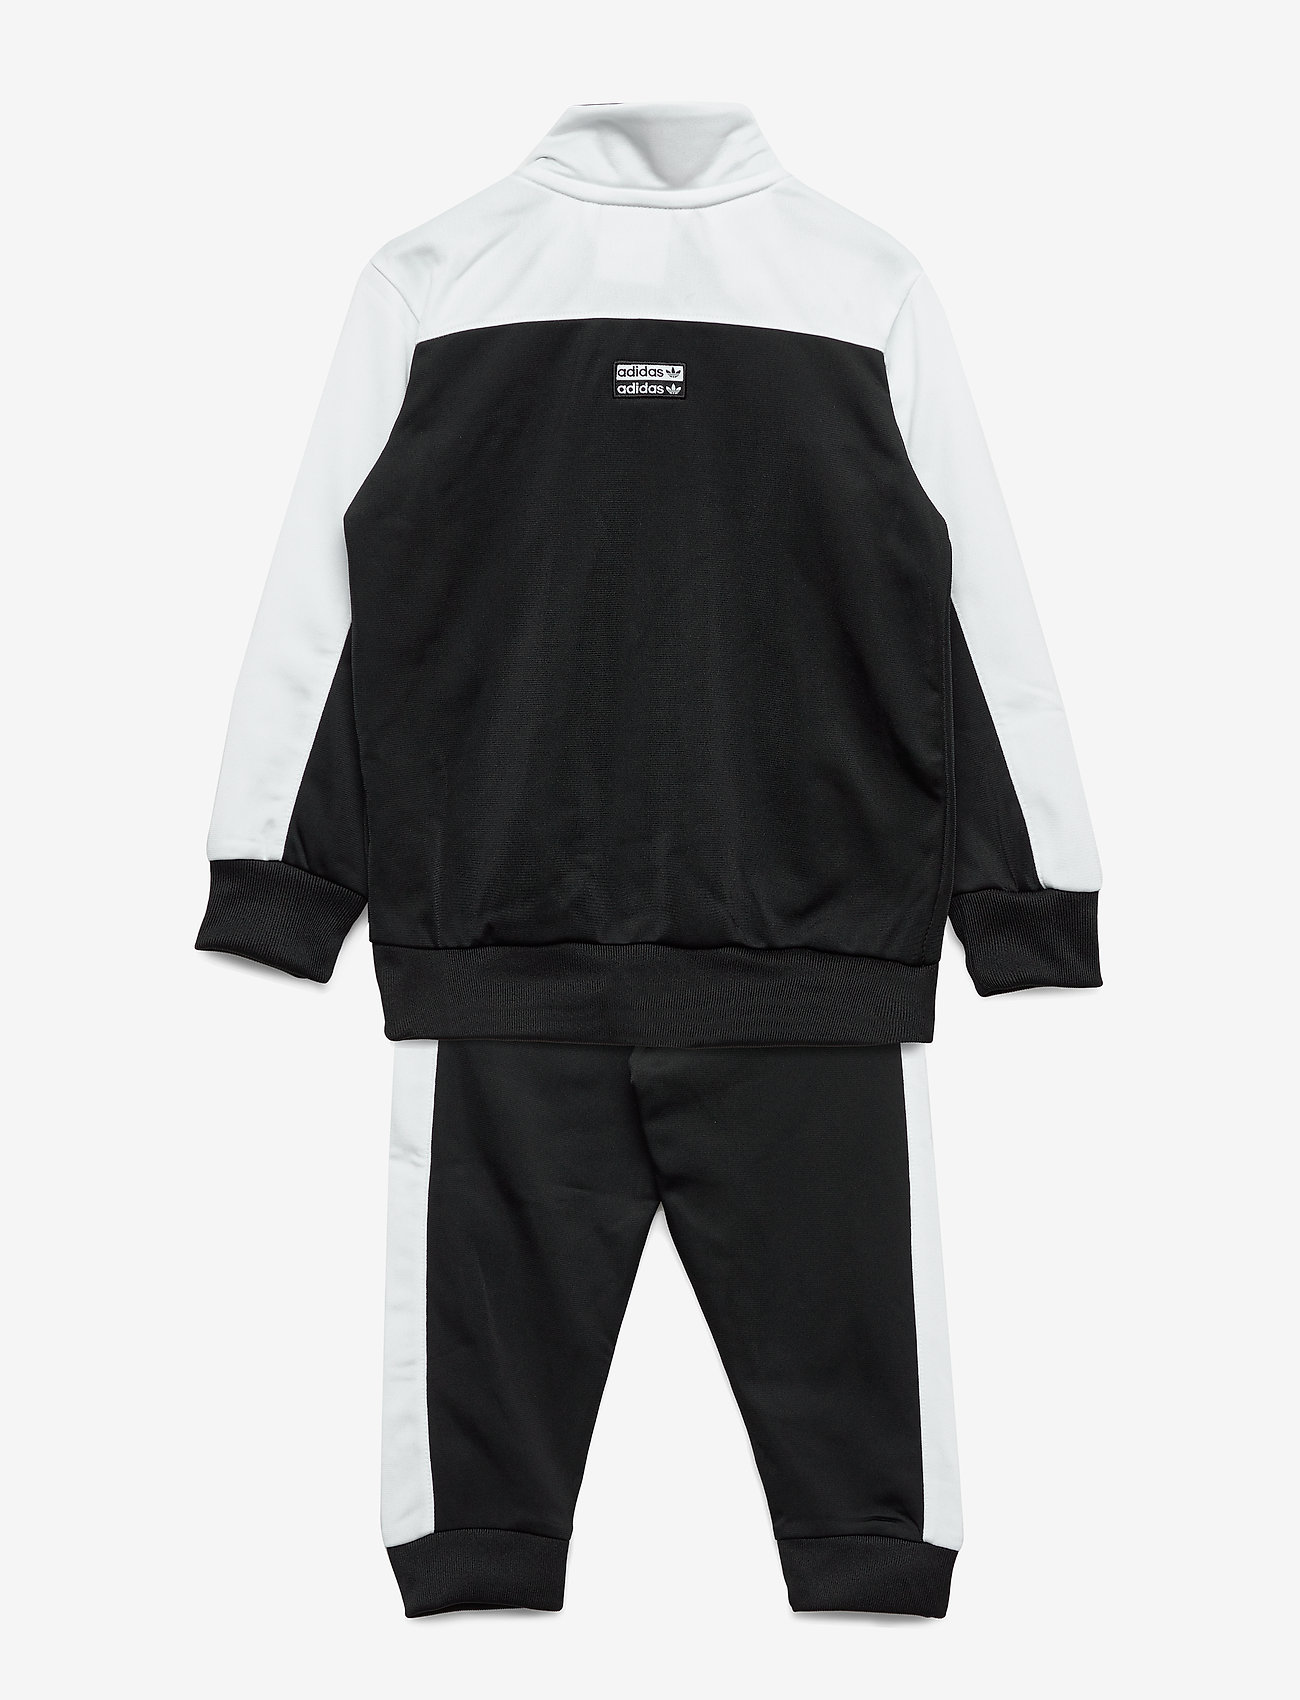 adidas Originals - TRACKSUIT - dresy - black/white - 1